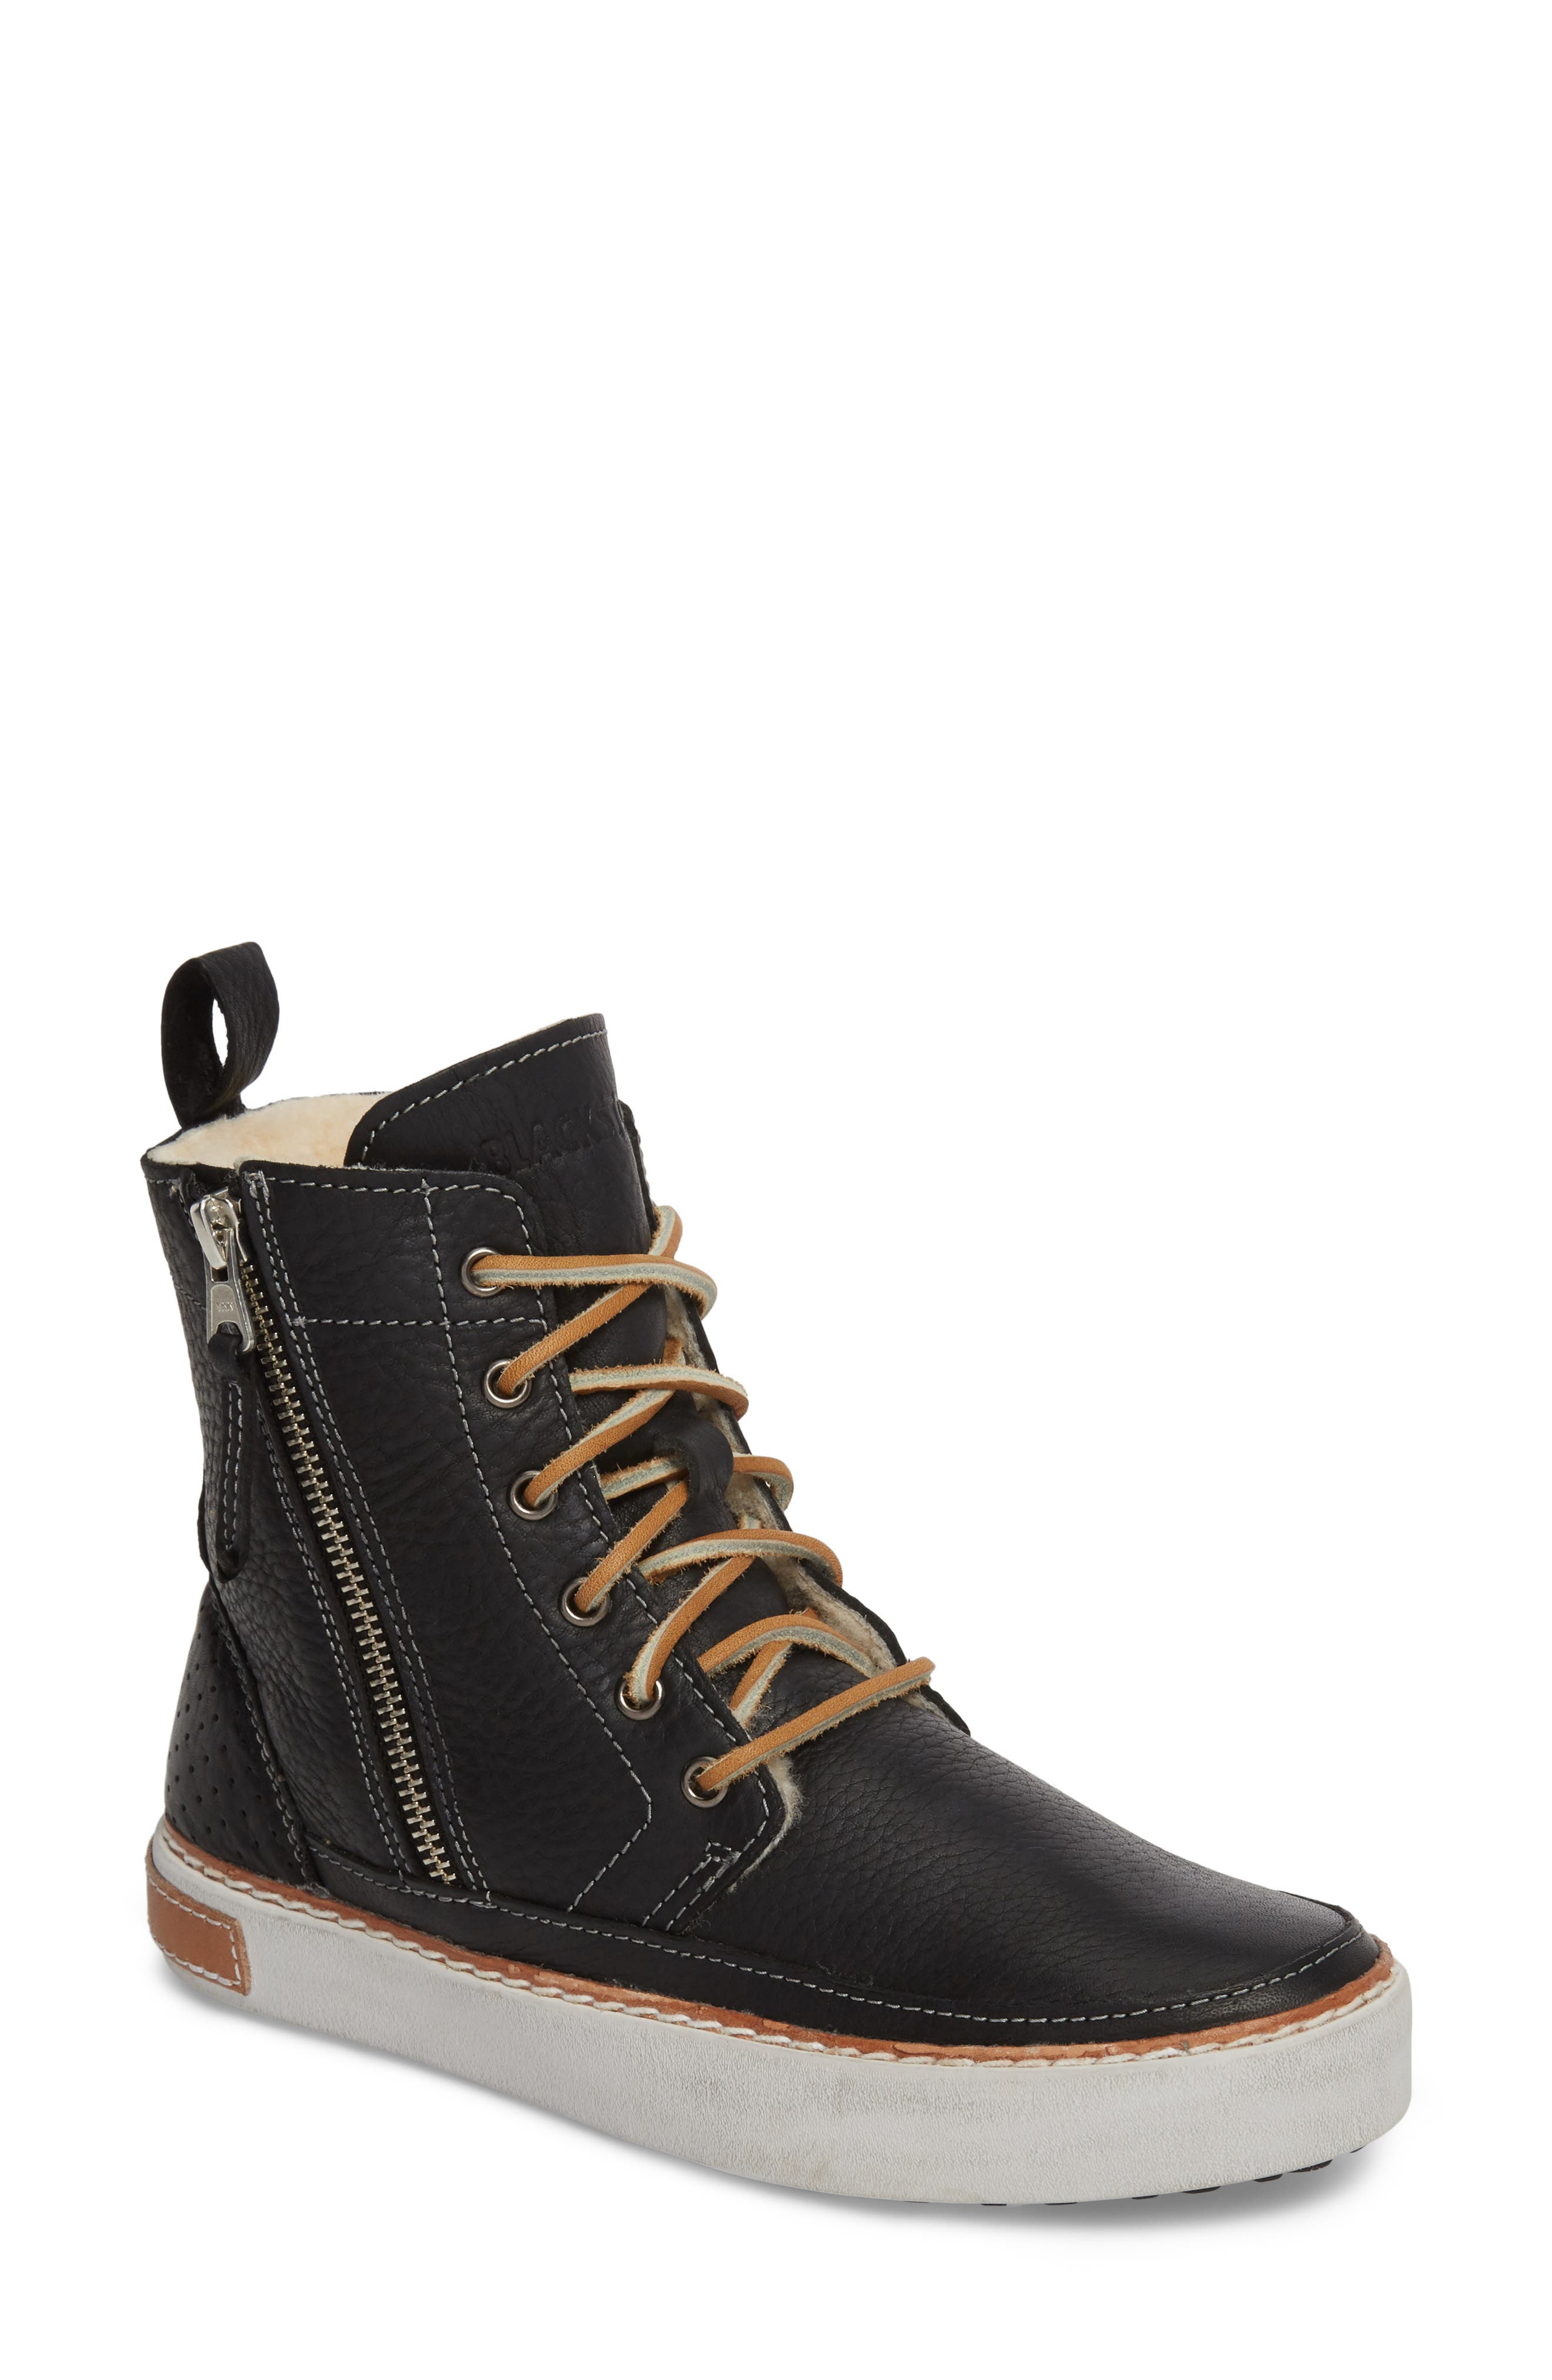 'CW96' Genuine Shearling Lined Sneaker Boot,                             Main thumbnail 1, color,                             BLACK LEATHER